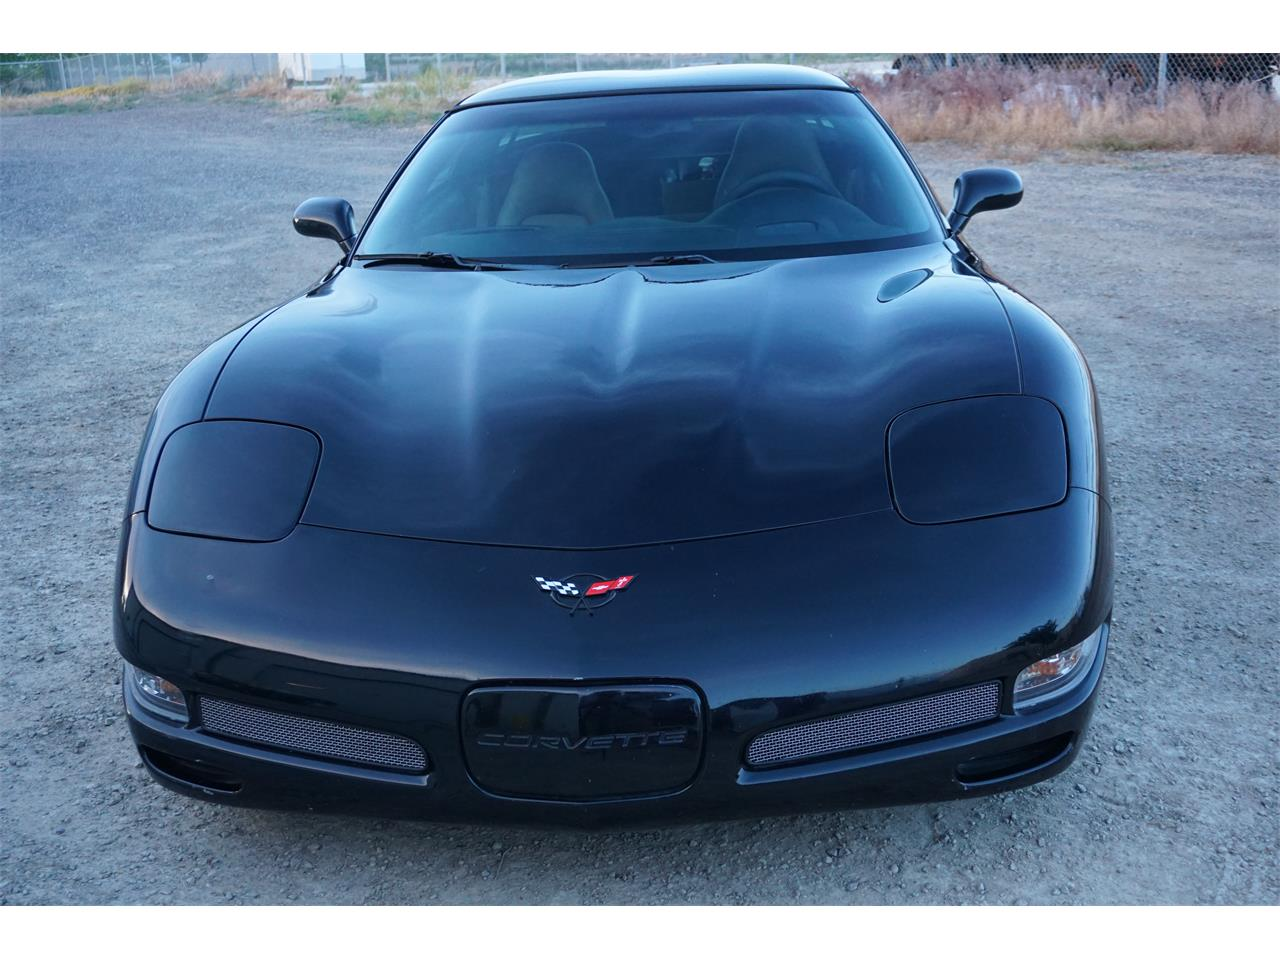 Large Picture of '02 Chevrolet Corvette located in Colorado Offered by a Private Seller - Q8JM